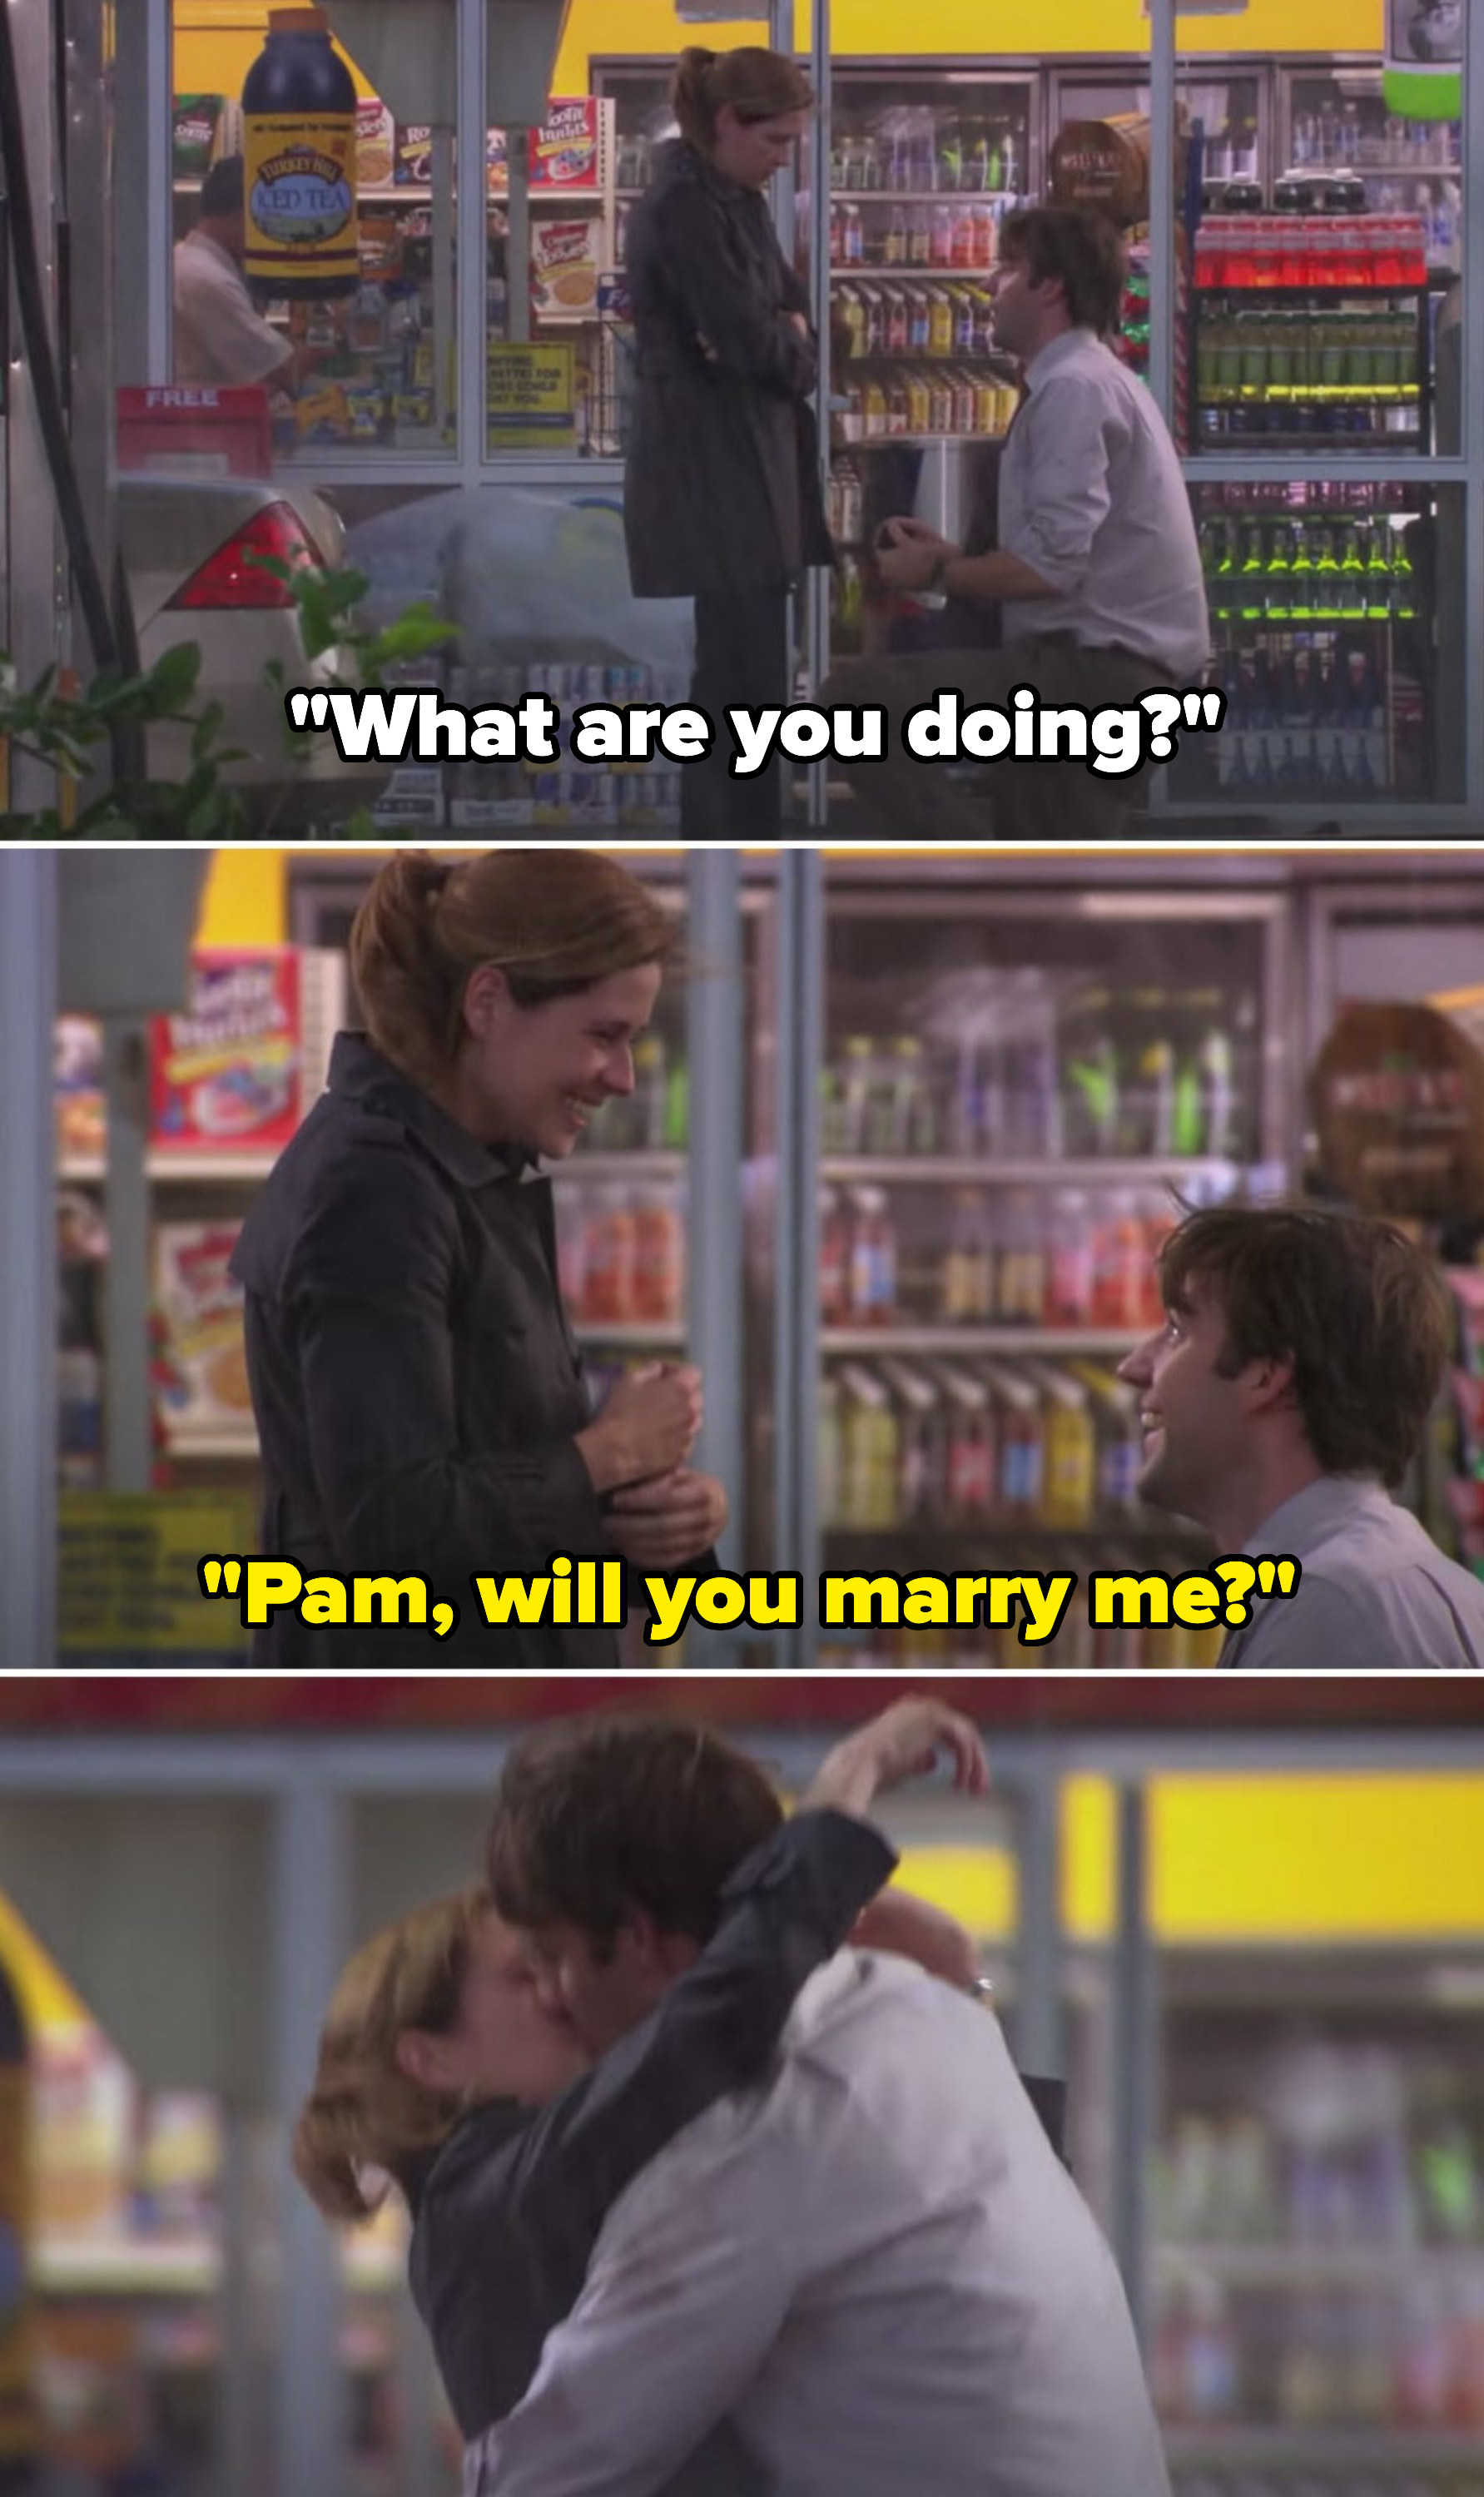 """Jim gets down on one knee and Pam asks, """"What are you doing?"""" Jim says, """"Pam, will you marry me?"""" and finally, the two embrace with a kiss"""